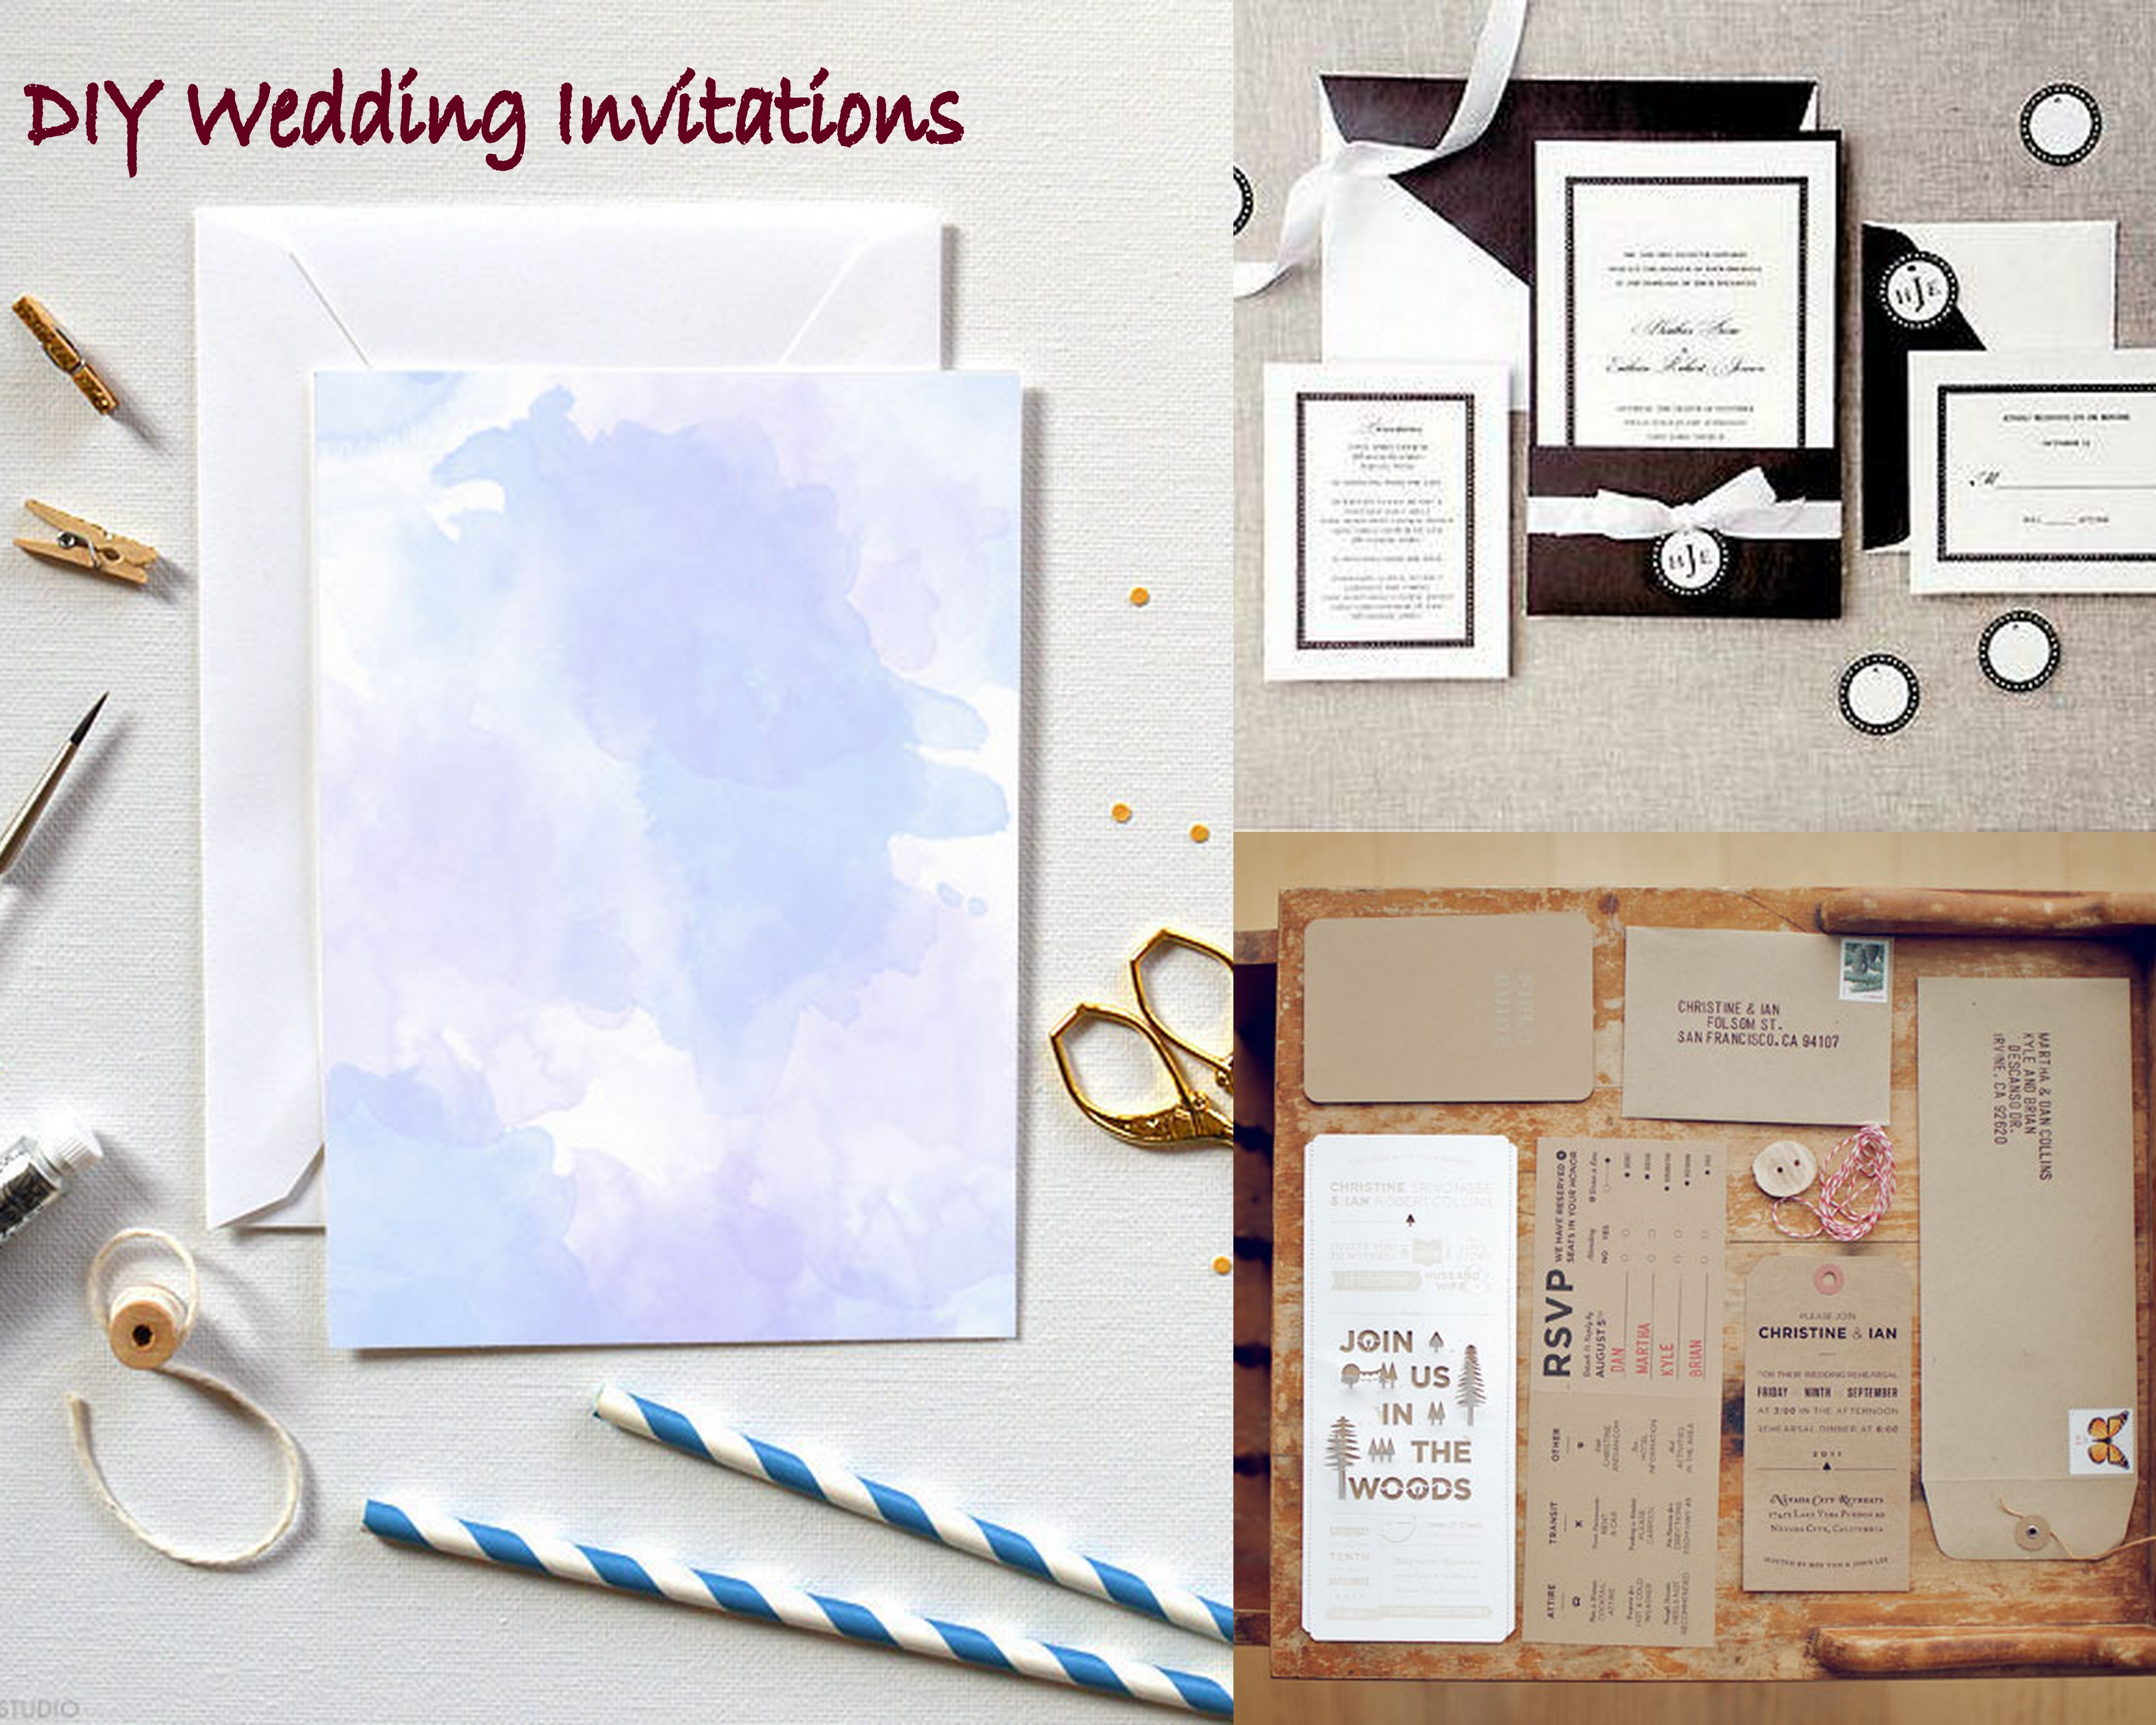 How to make use of diy wedding invitation kit